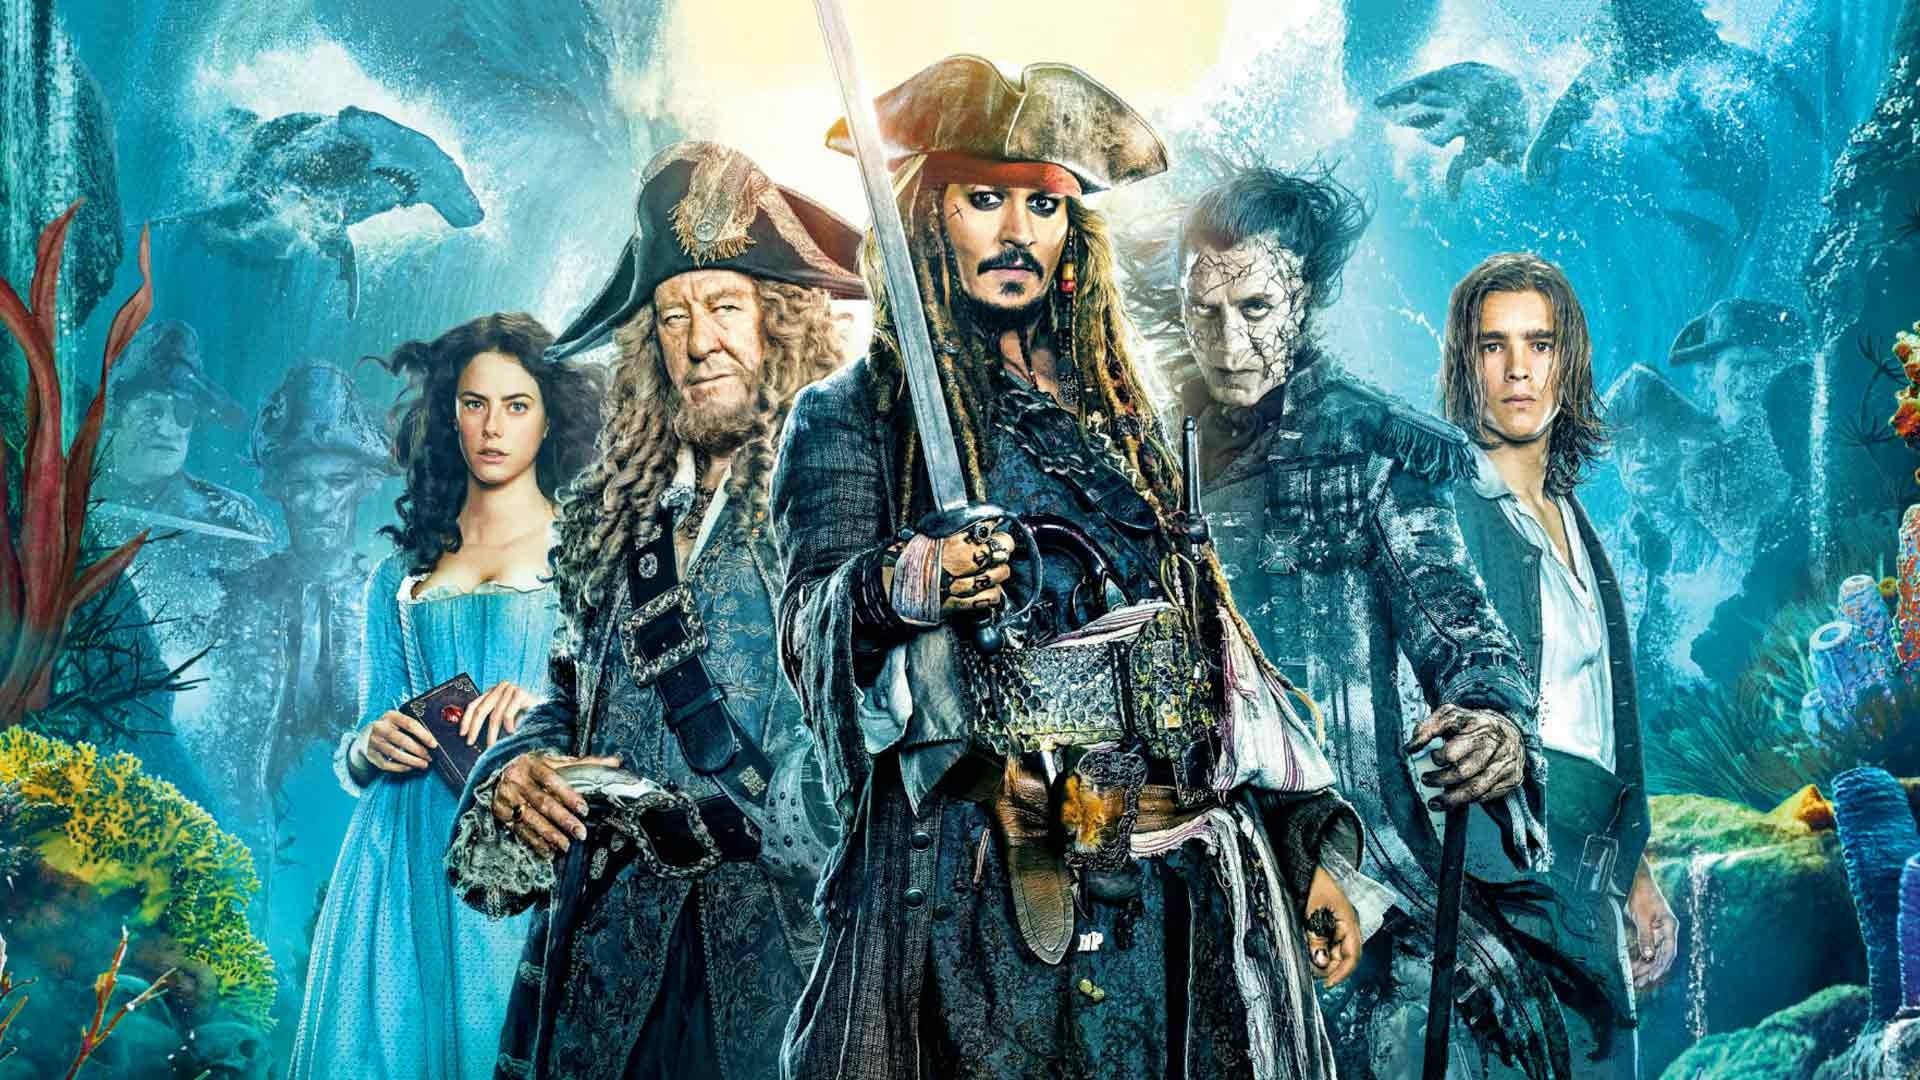 Pirates-of-the-Caribbean-Dead-Men-Tell-No-Tales-2017-after-credits-hq.jpg